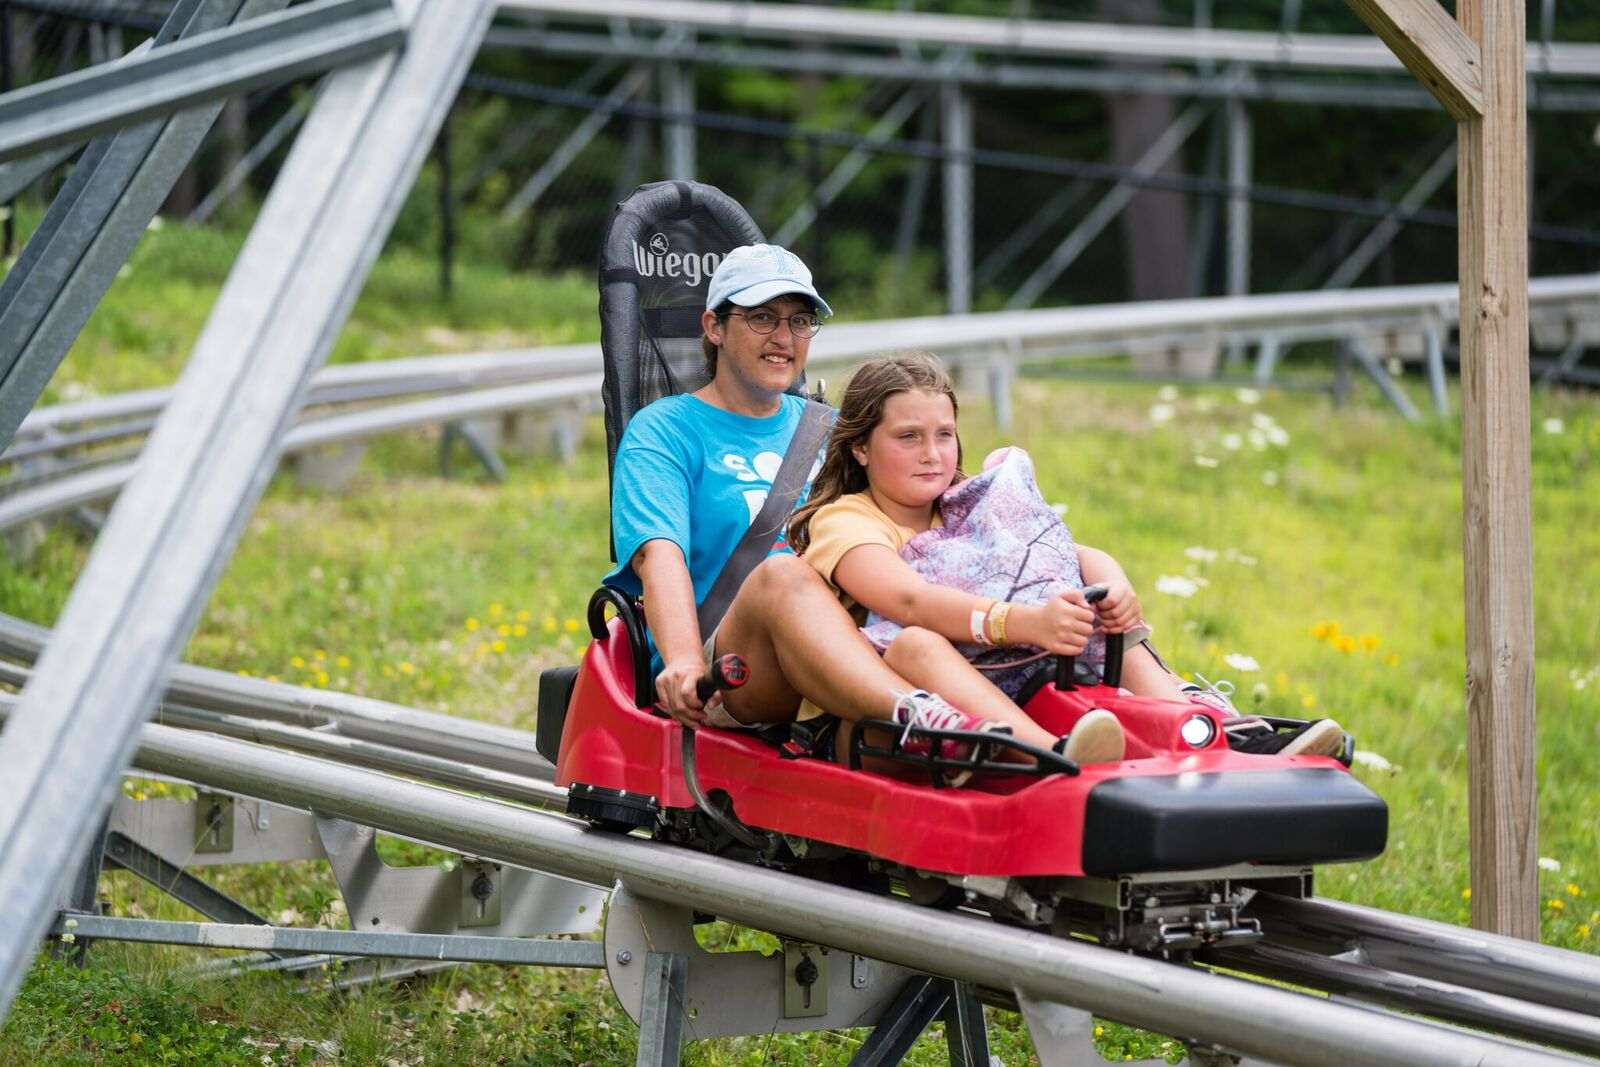 Mountain Coaster - Nearly 4100 feet long and with speeds up to 25 mph, this mountainside rollercoaster is designed with swooping turns, banked corners, rolling drops, and 360-degree turns.